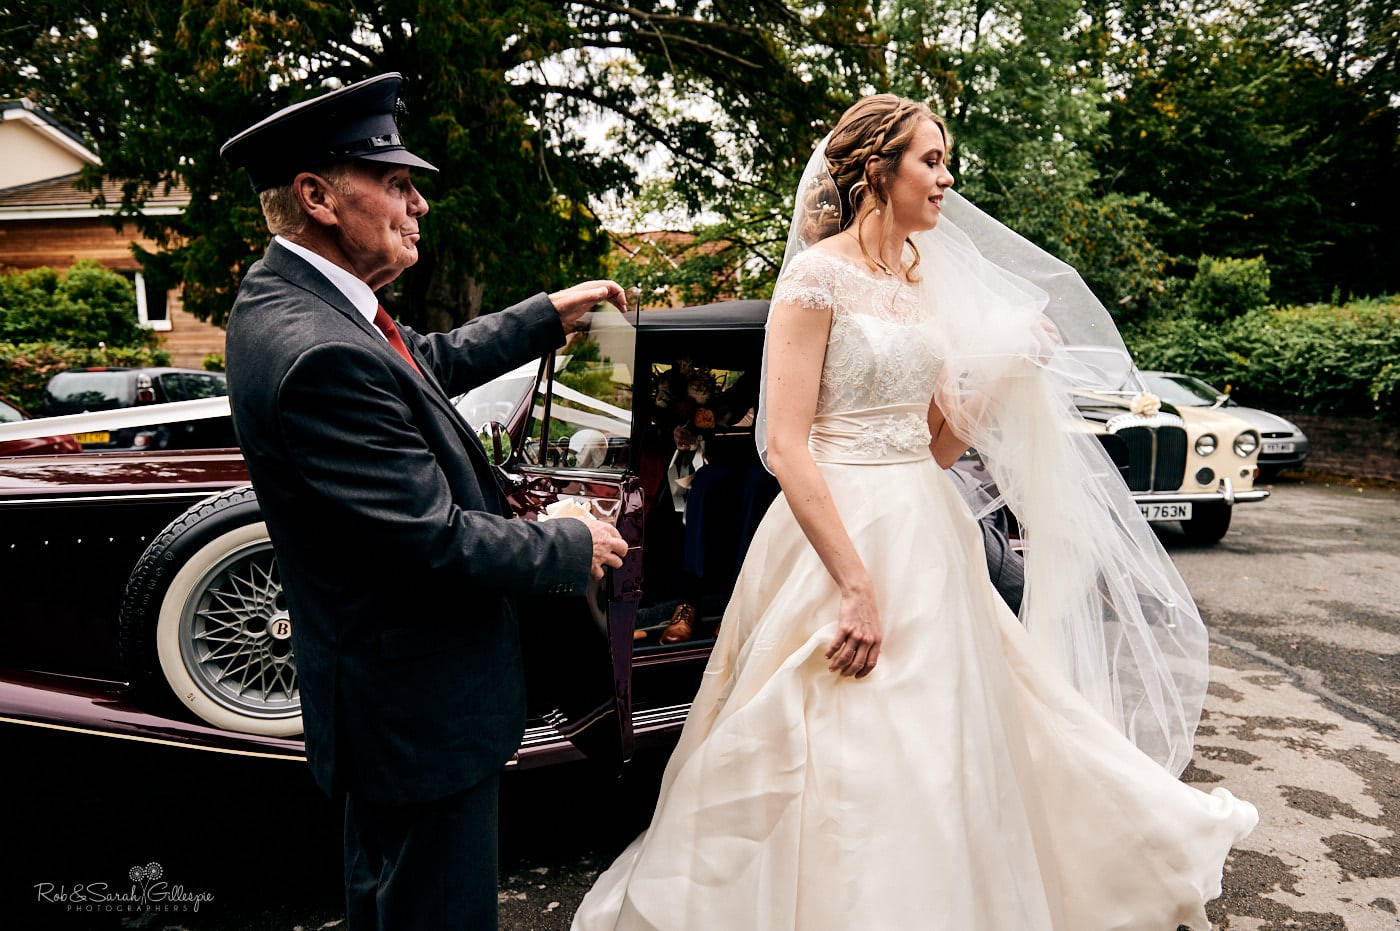 Bride gets out of car for wedding St Peter's church Pedmore